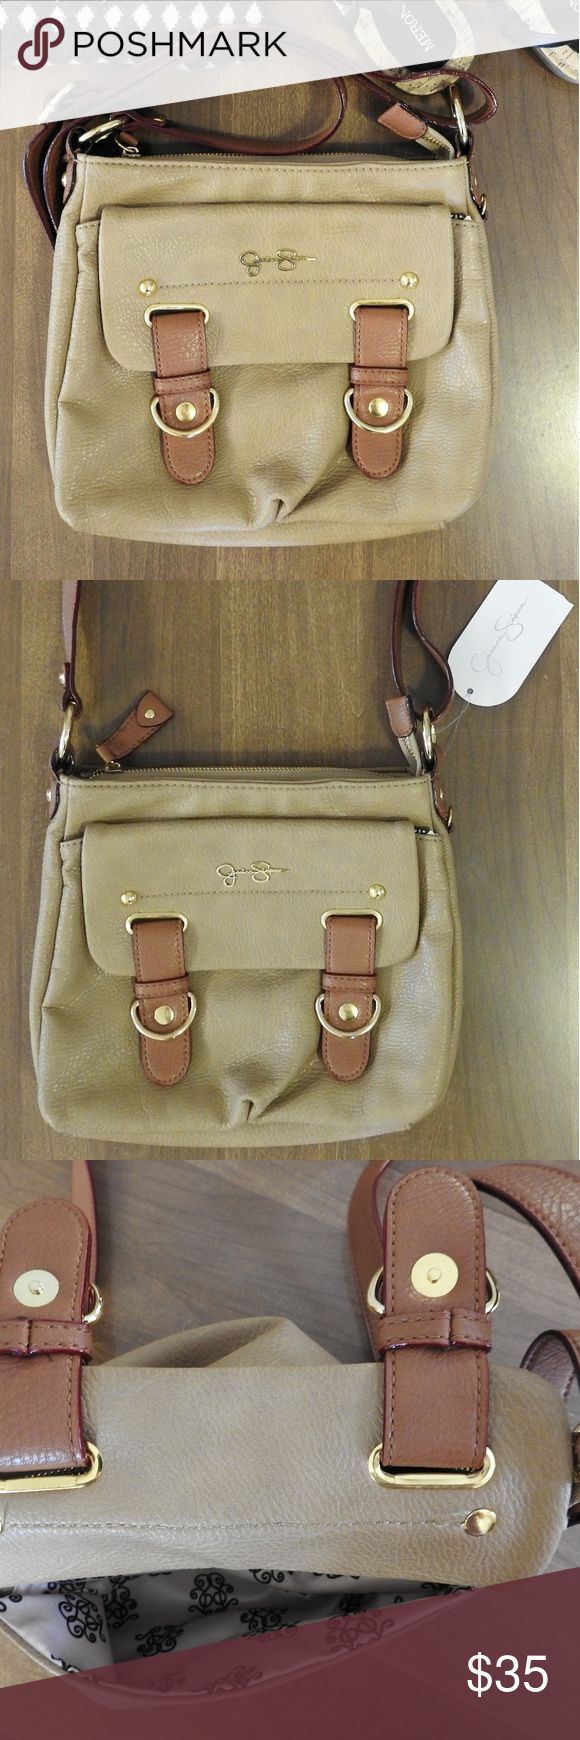 Jessica Simpson crossbody bag Authentic! Gorgeous crossbody bag from Jessica Simpson. It has pockets and a zip top closure. Never used, new with tags. A few tiny cracks on sides of the strap, nothing major, you can barely tell. Beautiful detailing on the inside of the bag. Jessica Simpson Bags Crossbody Bags